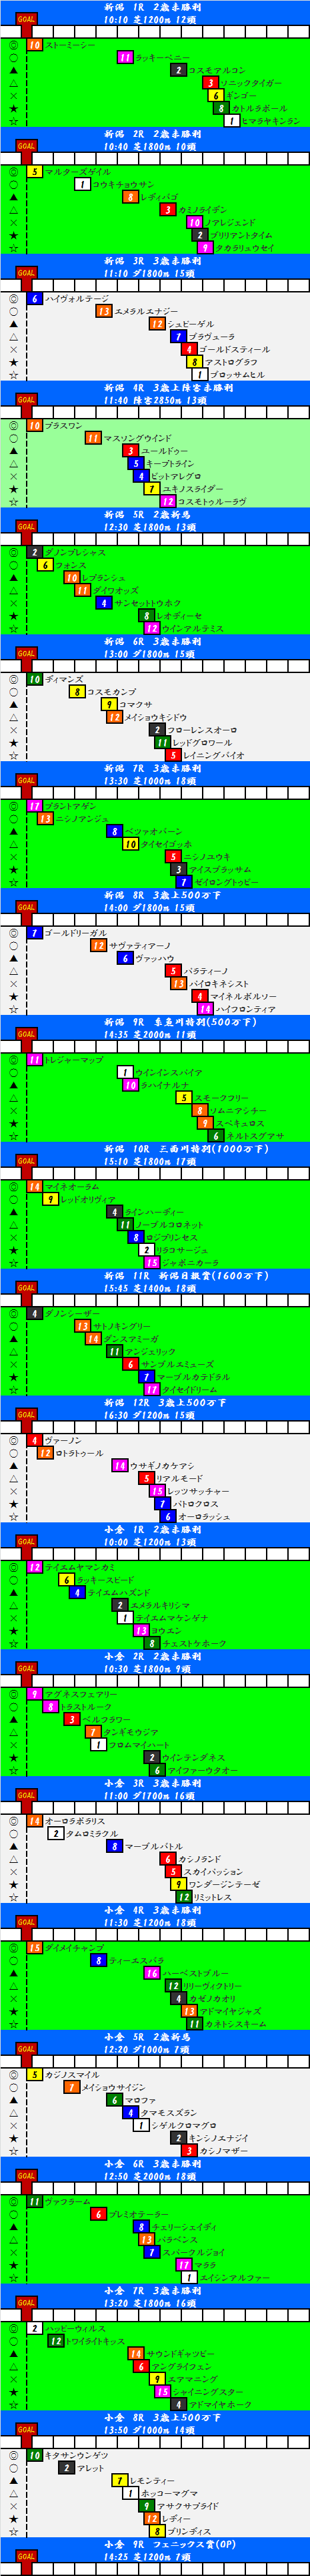 2015081501.png